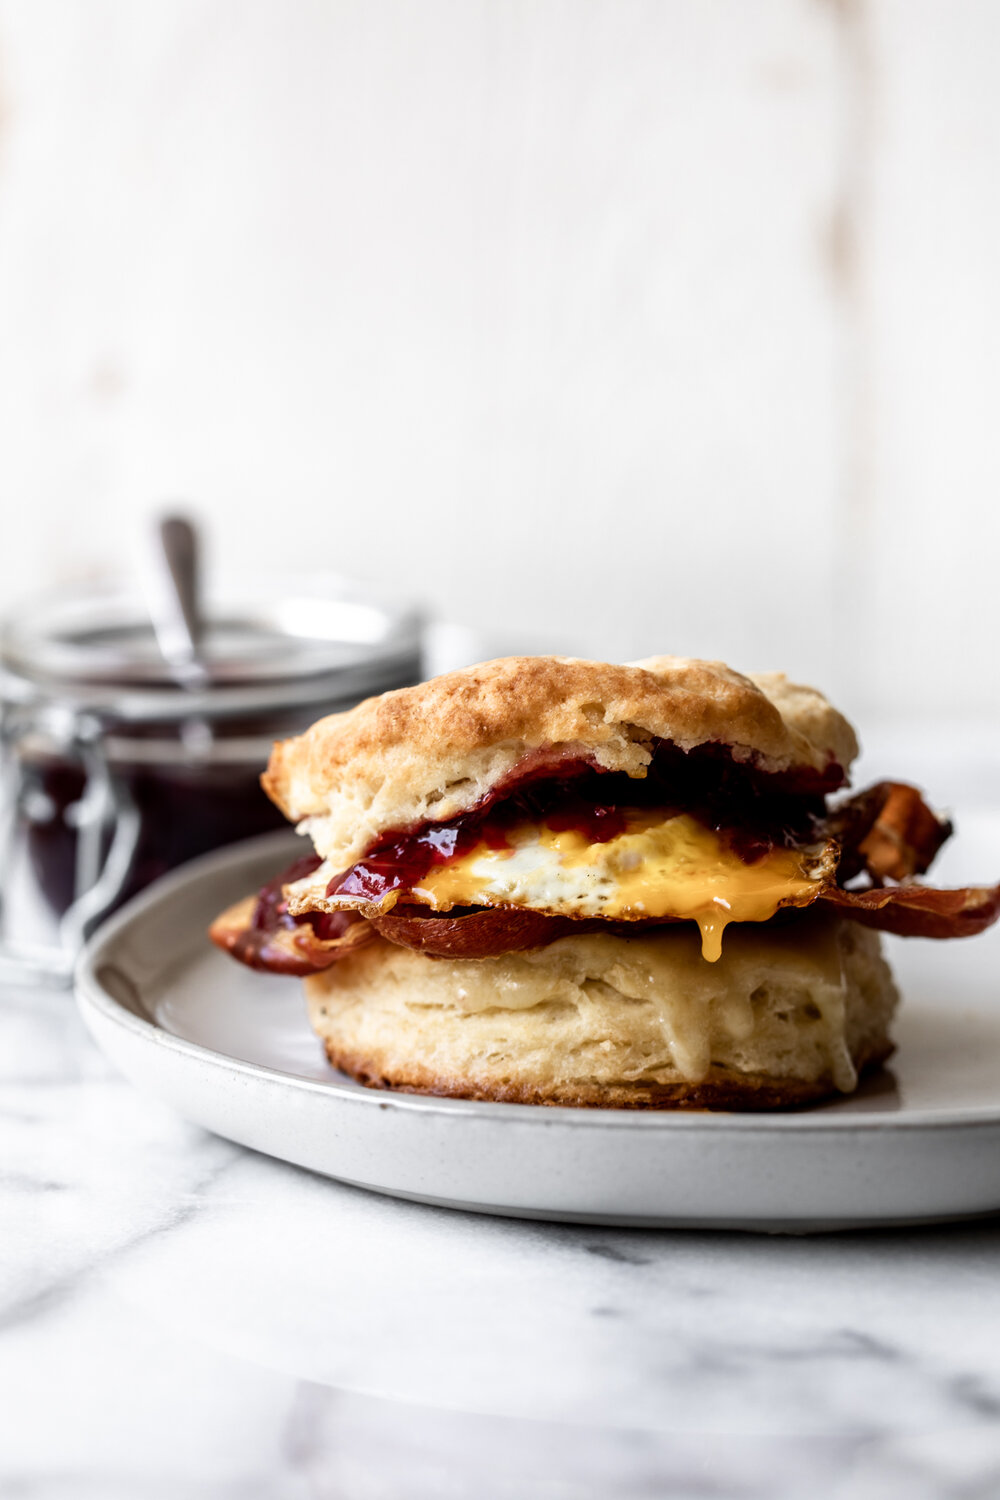 This breakfast sandwich combines both sweet and savory elements with crispy prosciutto, gruyere cheese, jam and a fried egg on a biscuit